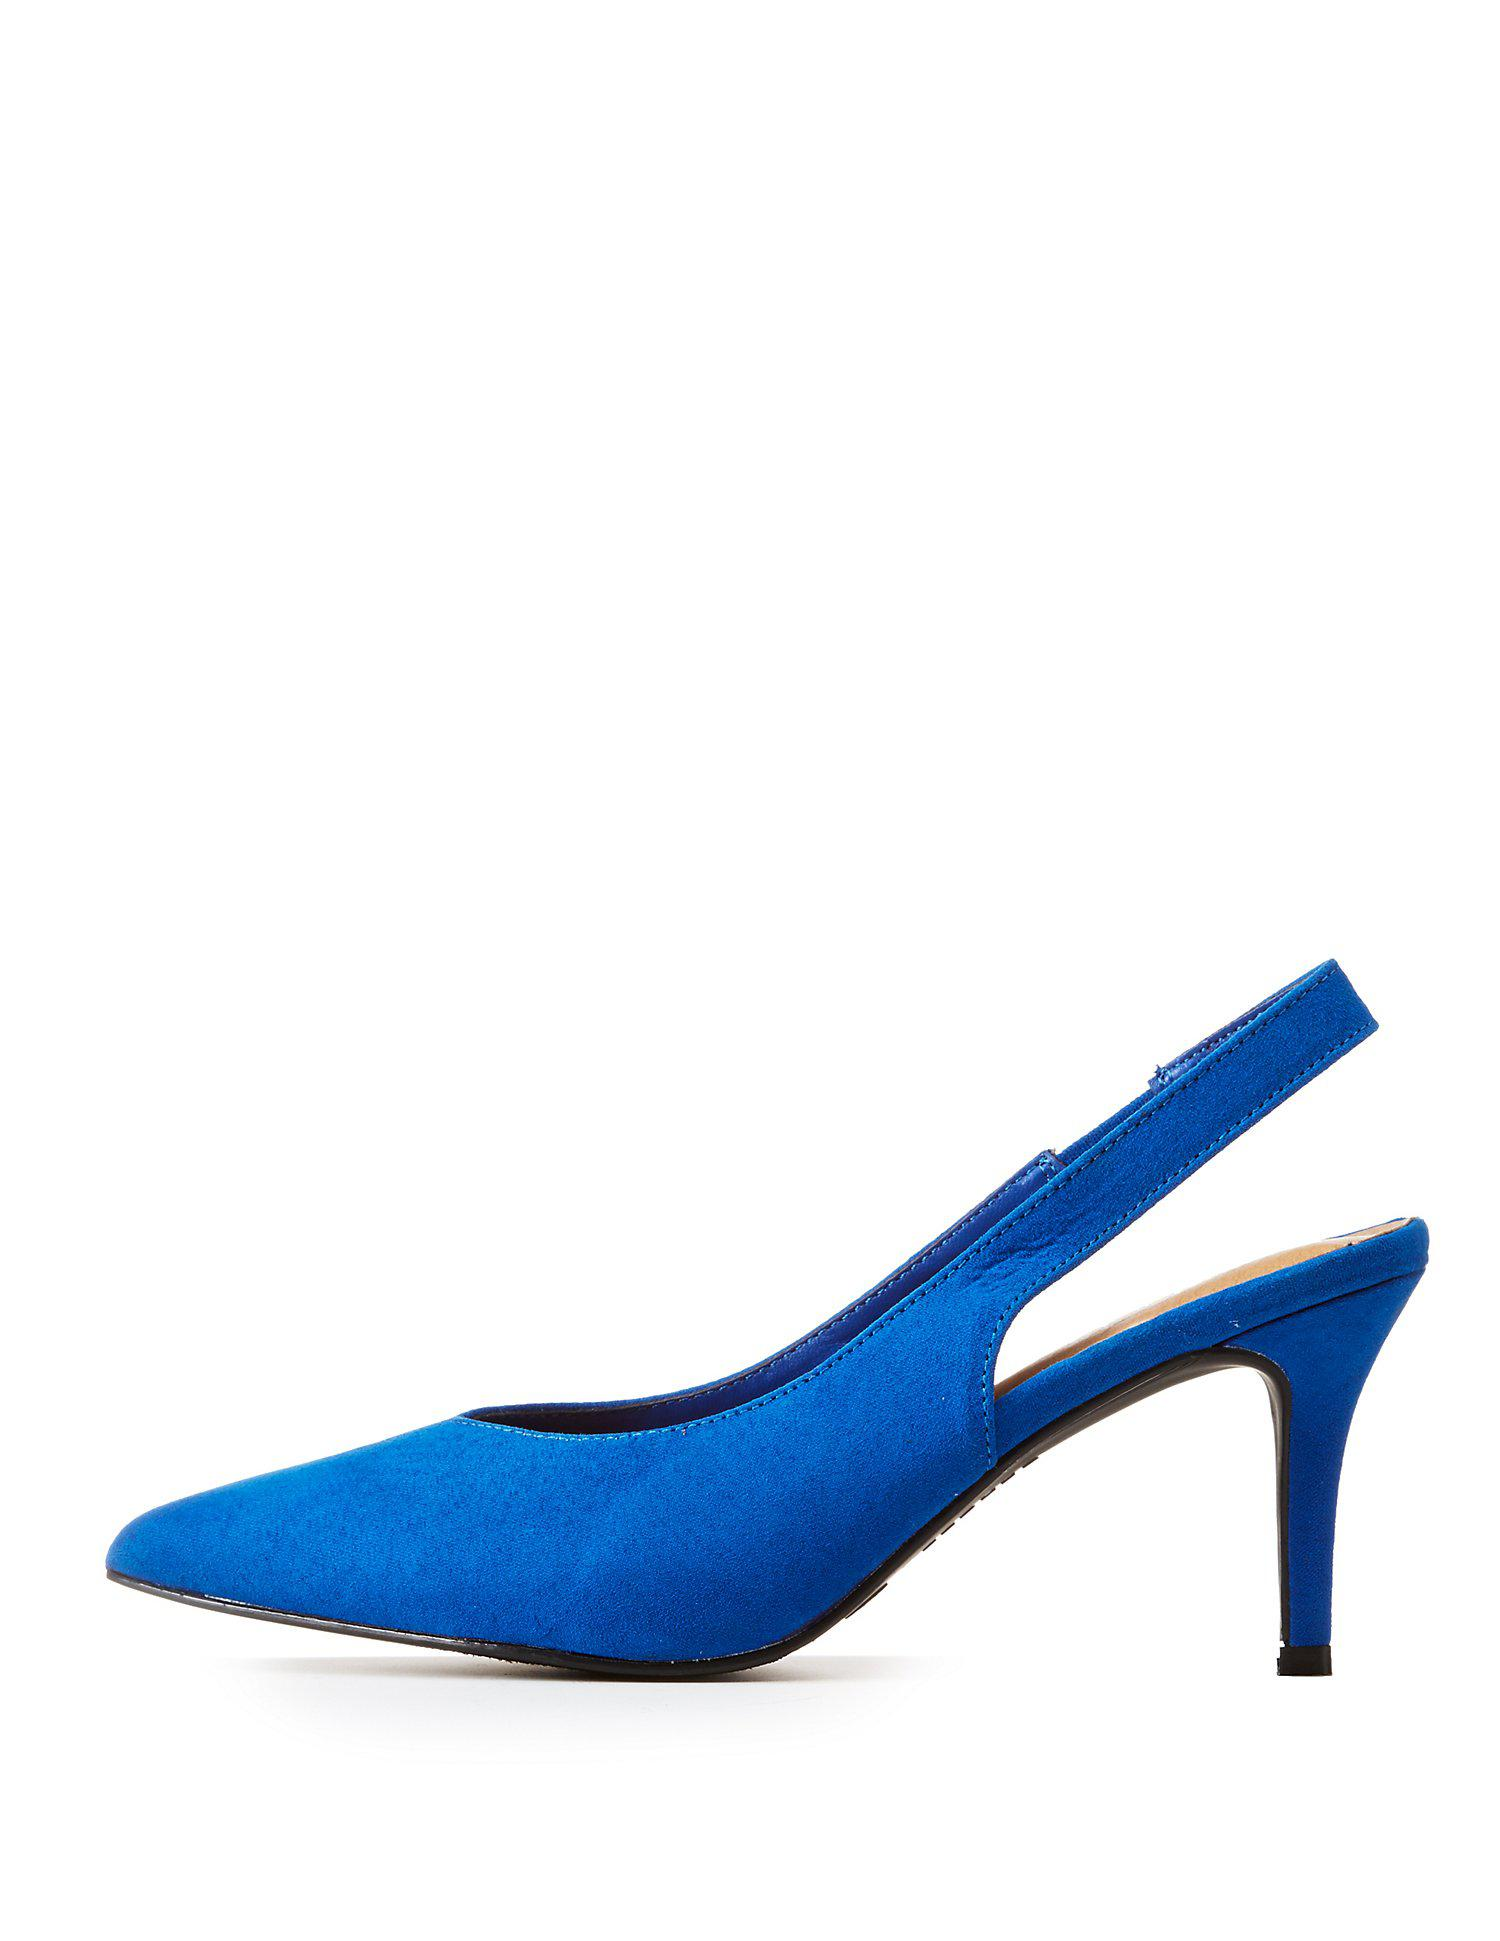 98c4a7a15 Lyst - Charlotte Russe Bamboo Pointed Toe Slingback Pumps in Blue ...